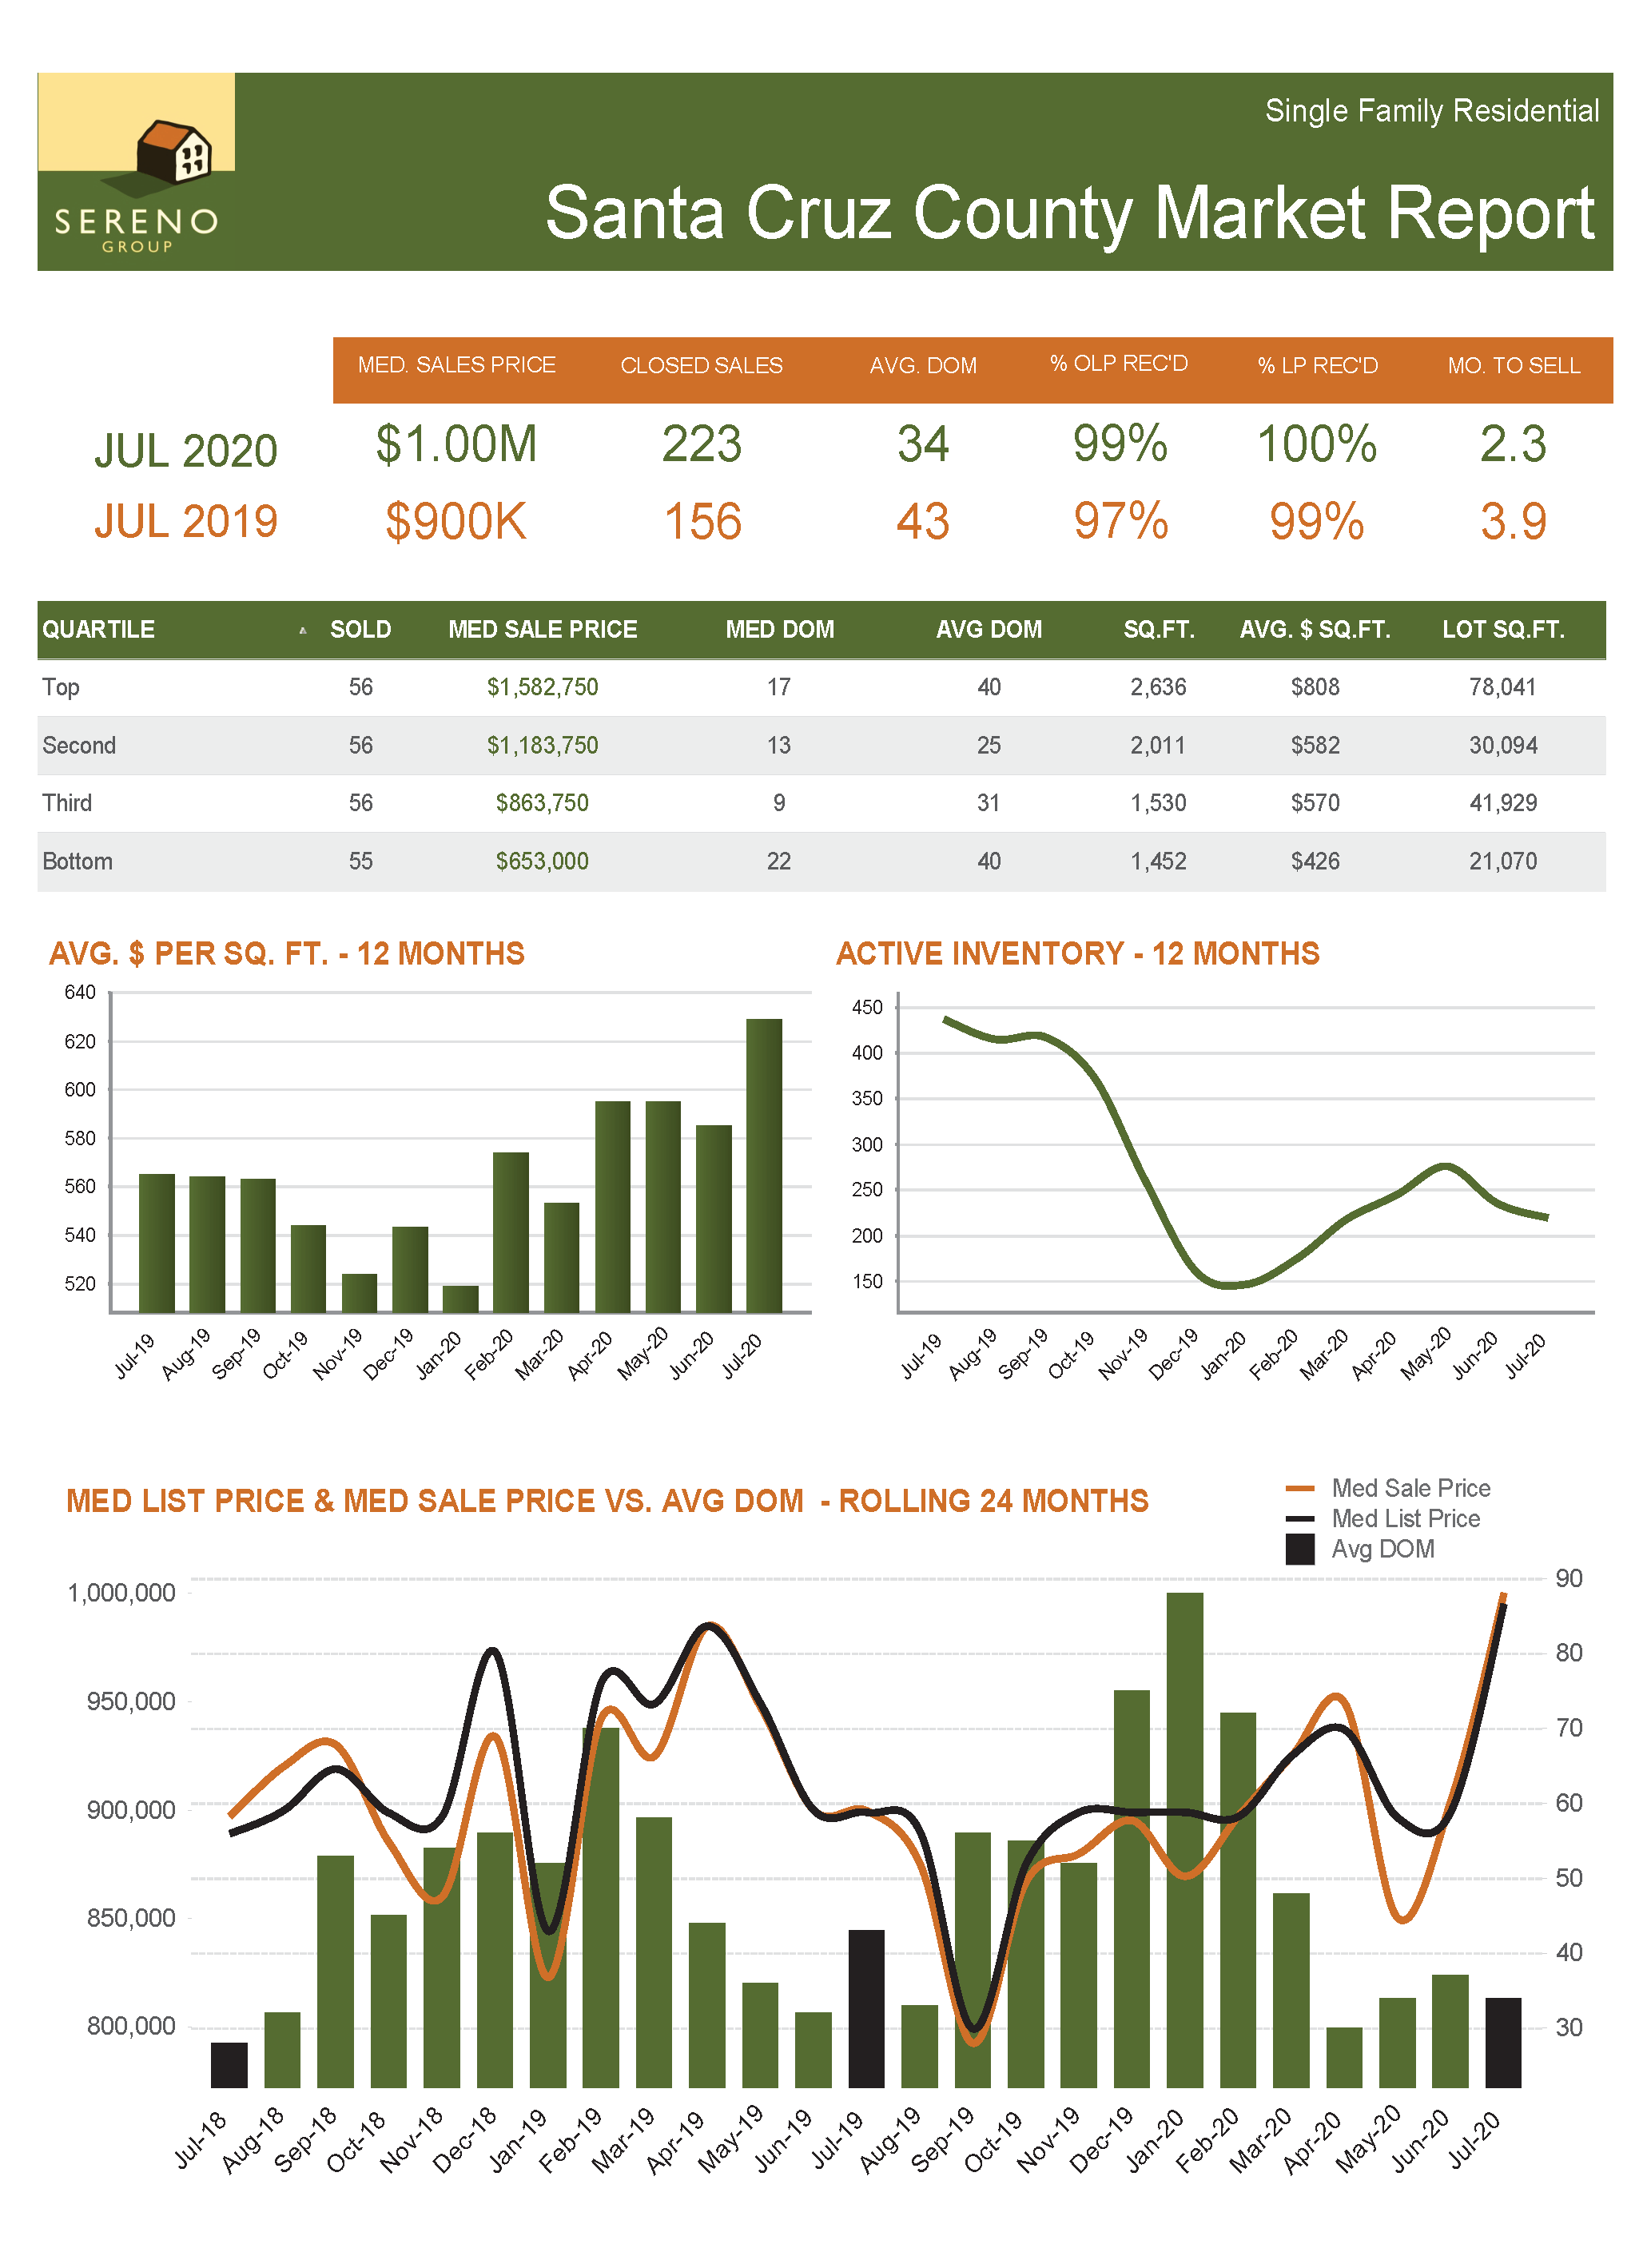 Santa Cruz County SFH Market Report - Jul 2020